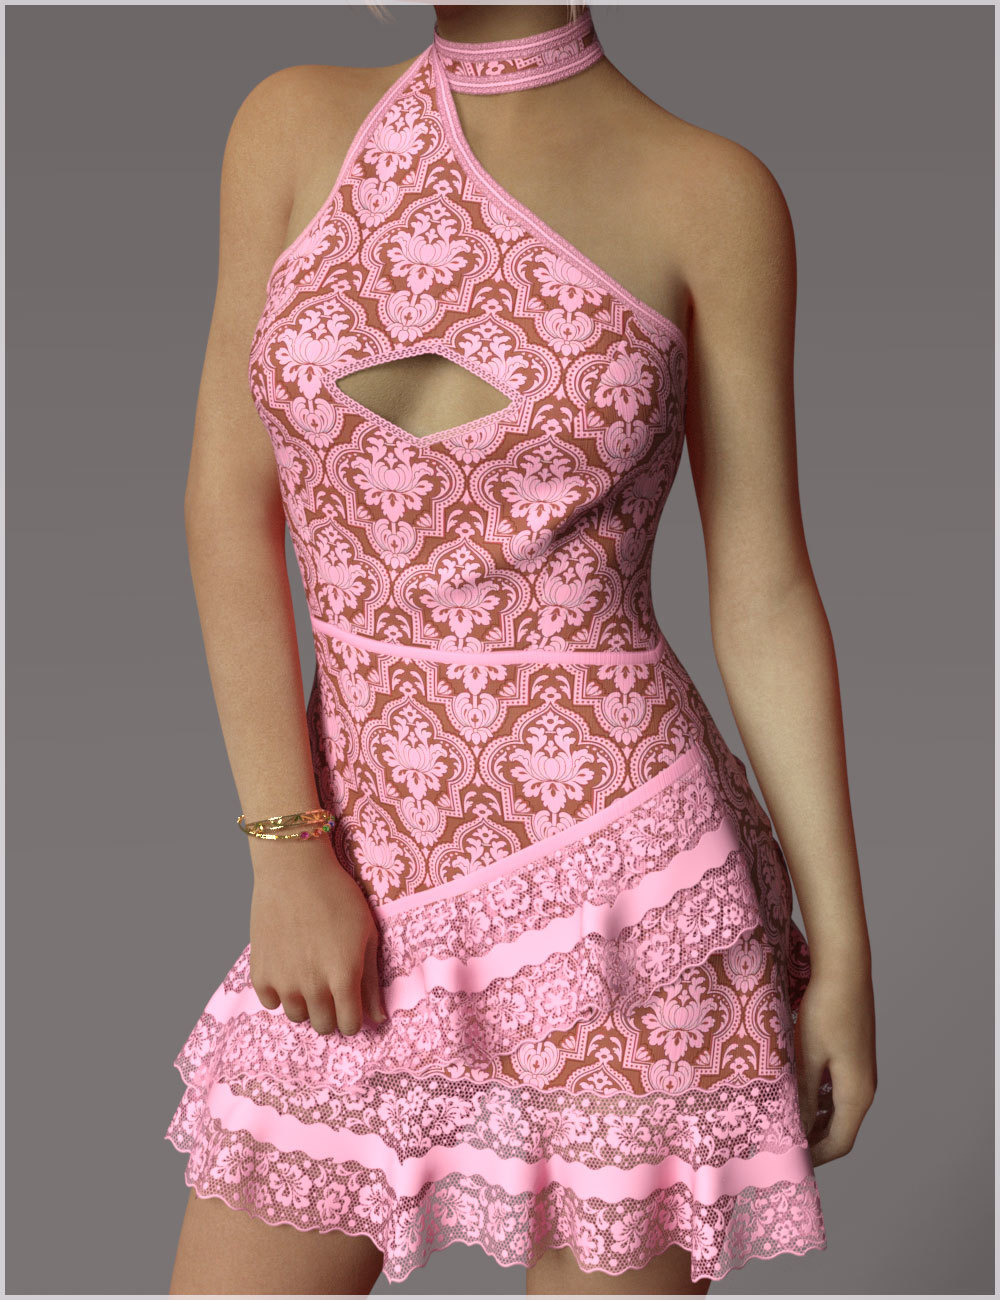 Fling For dForce Mollie Candy Dress Outfit by Belladzines